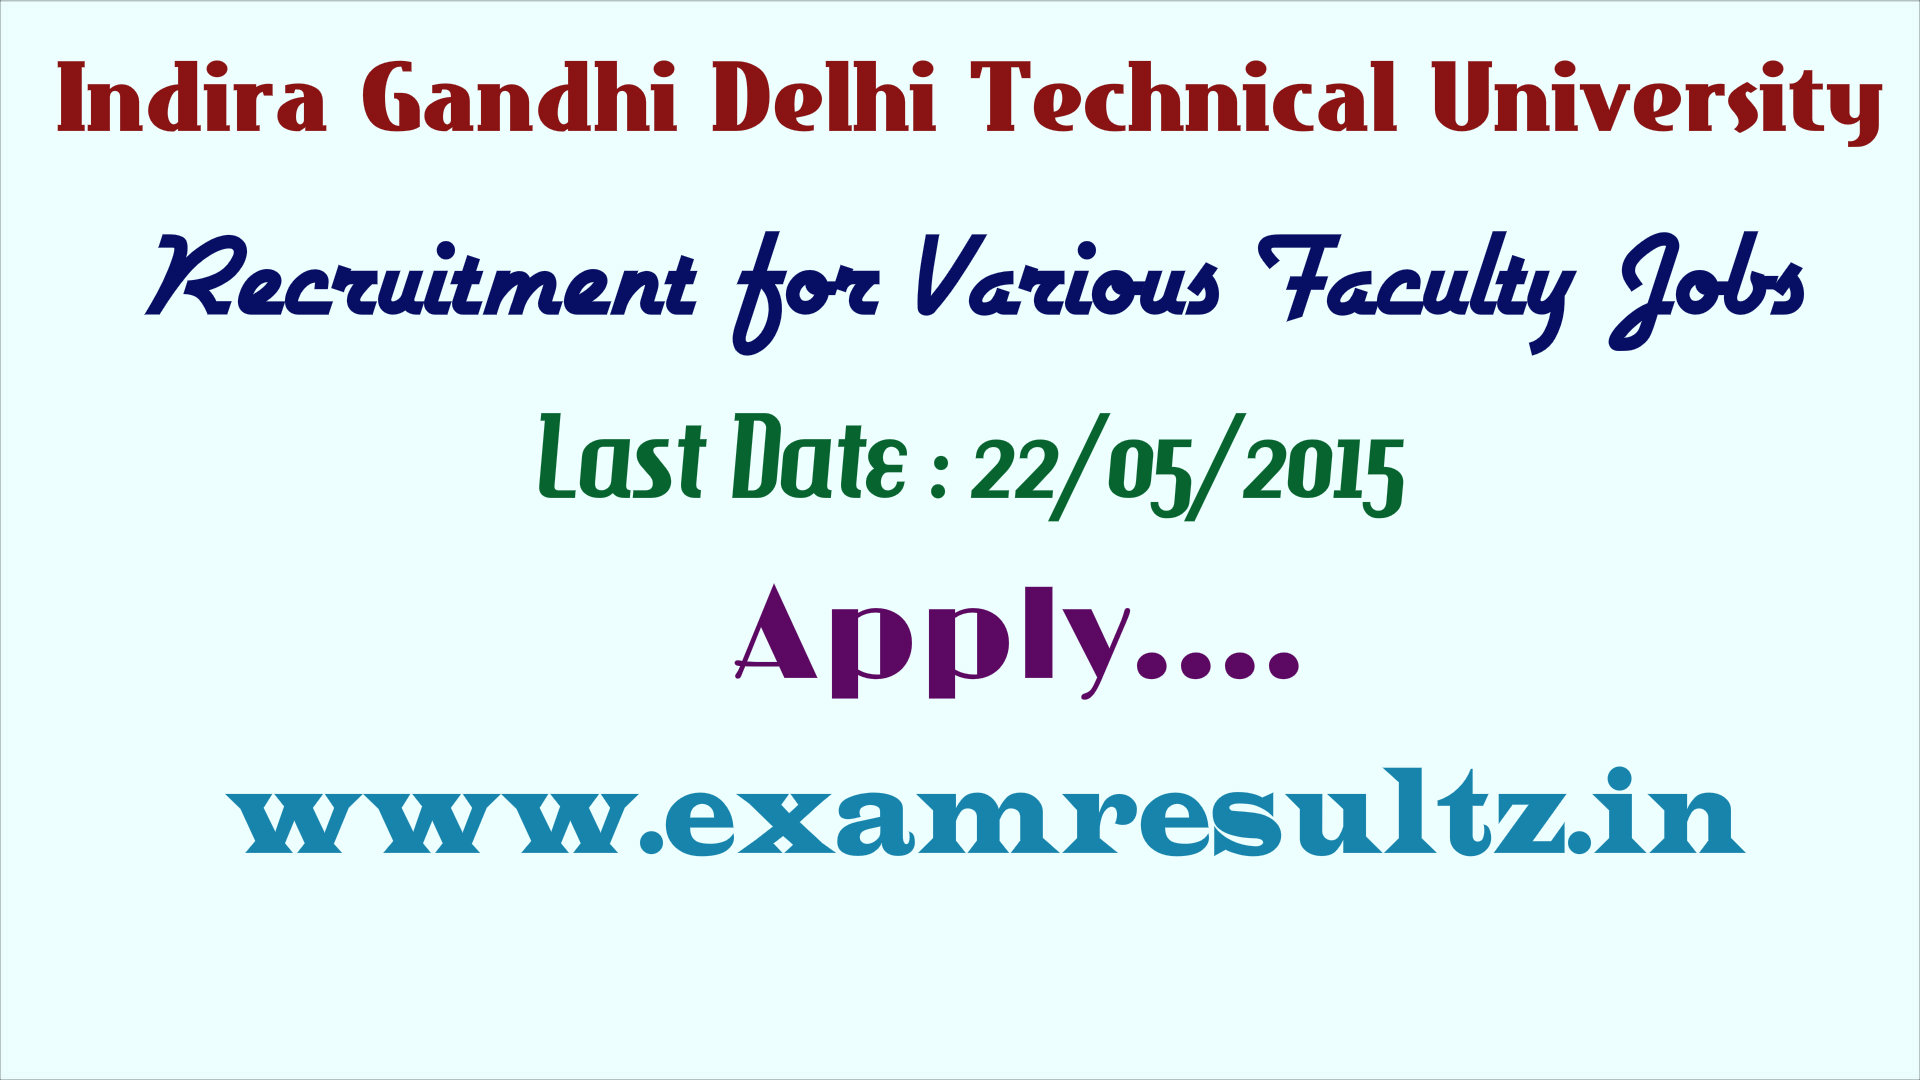 Indira gandhi delhi technical university facult teaching jobs recruitment